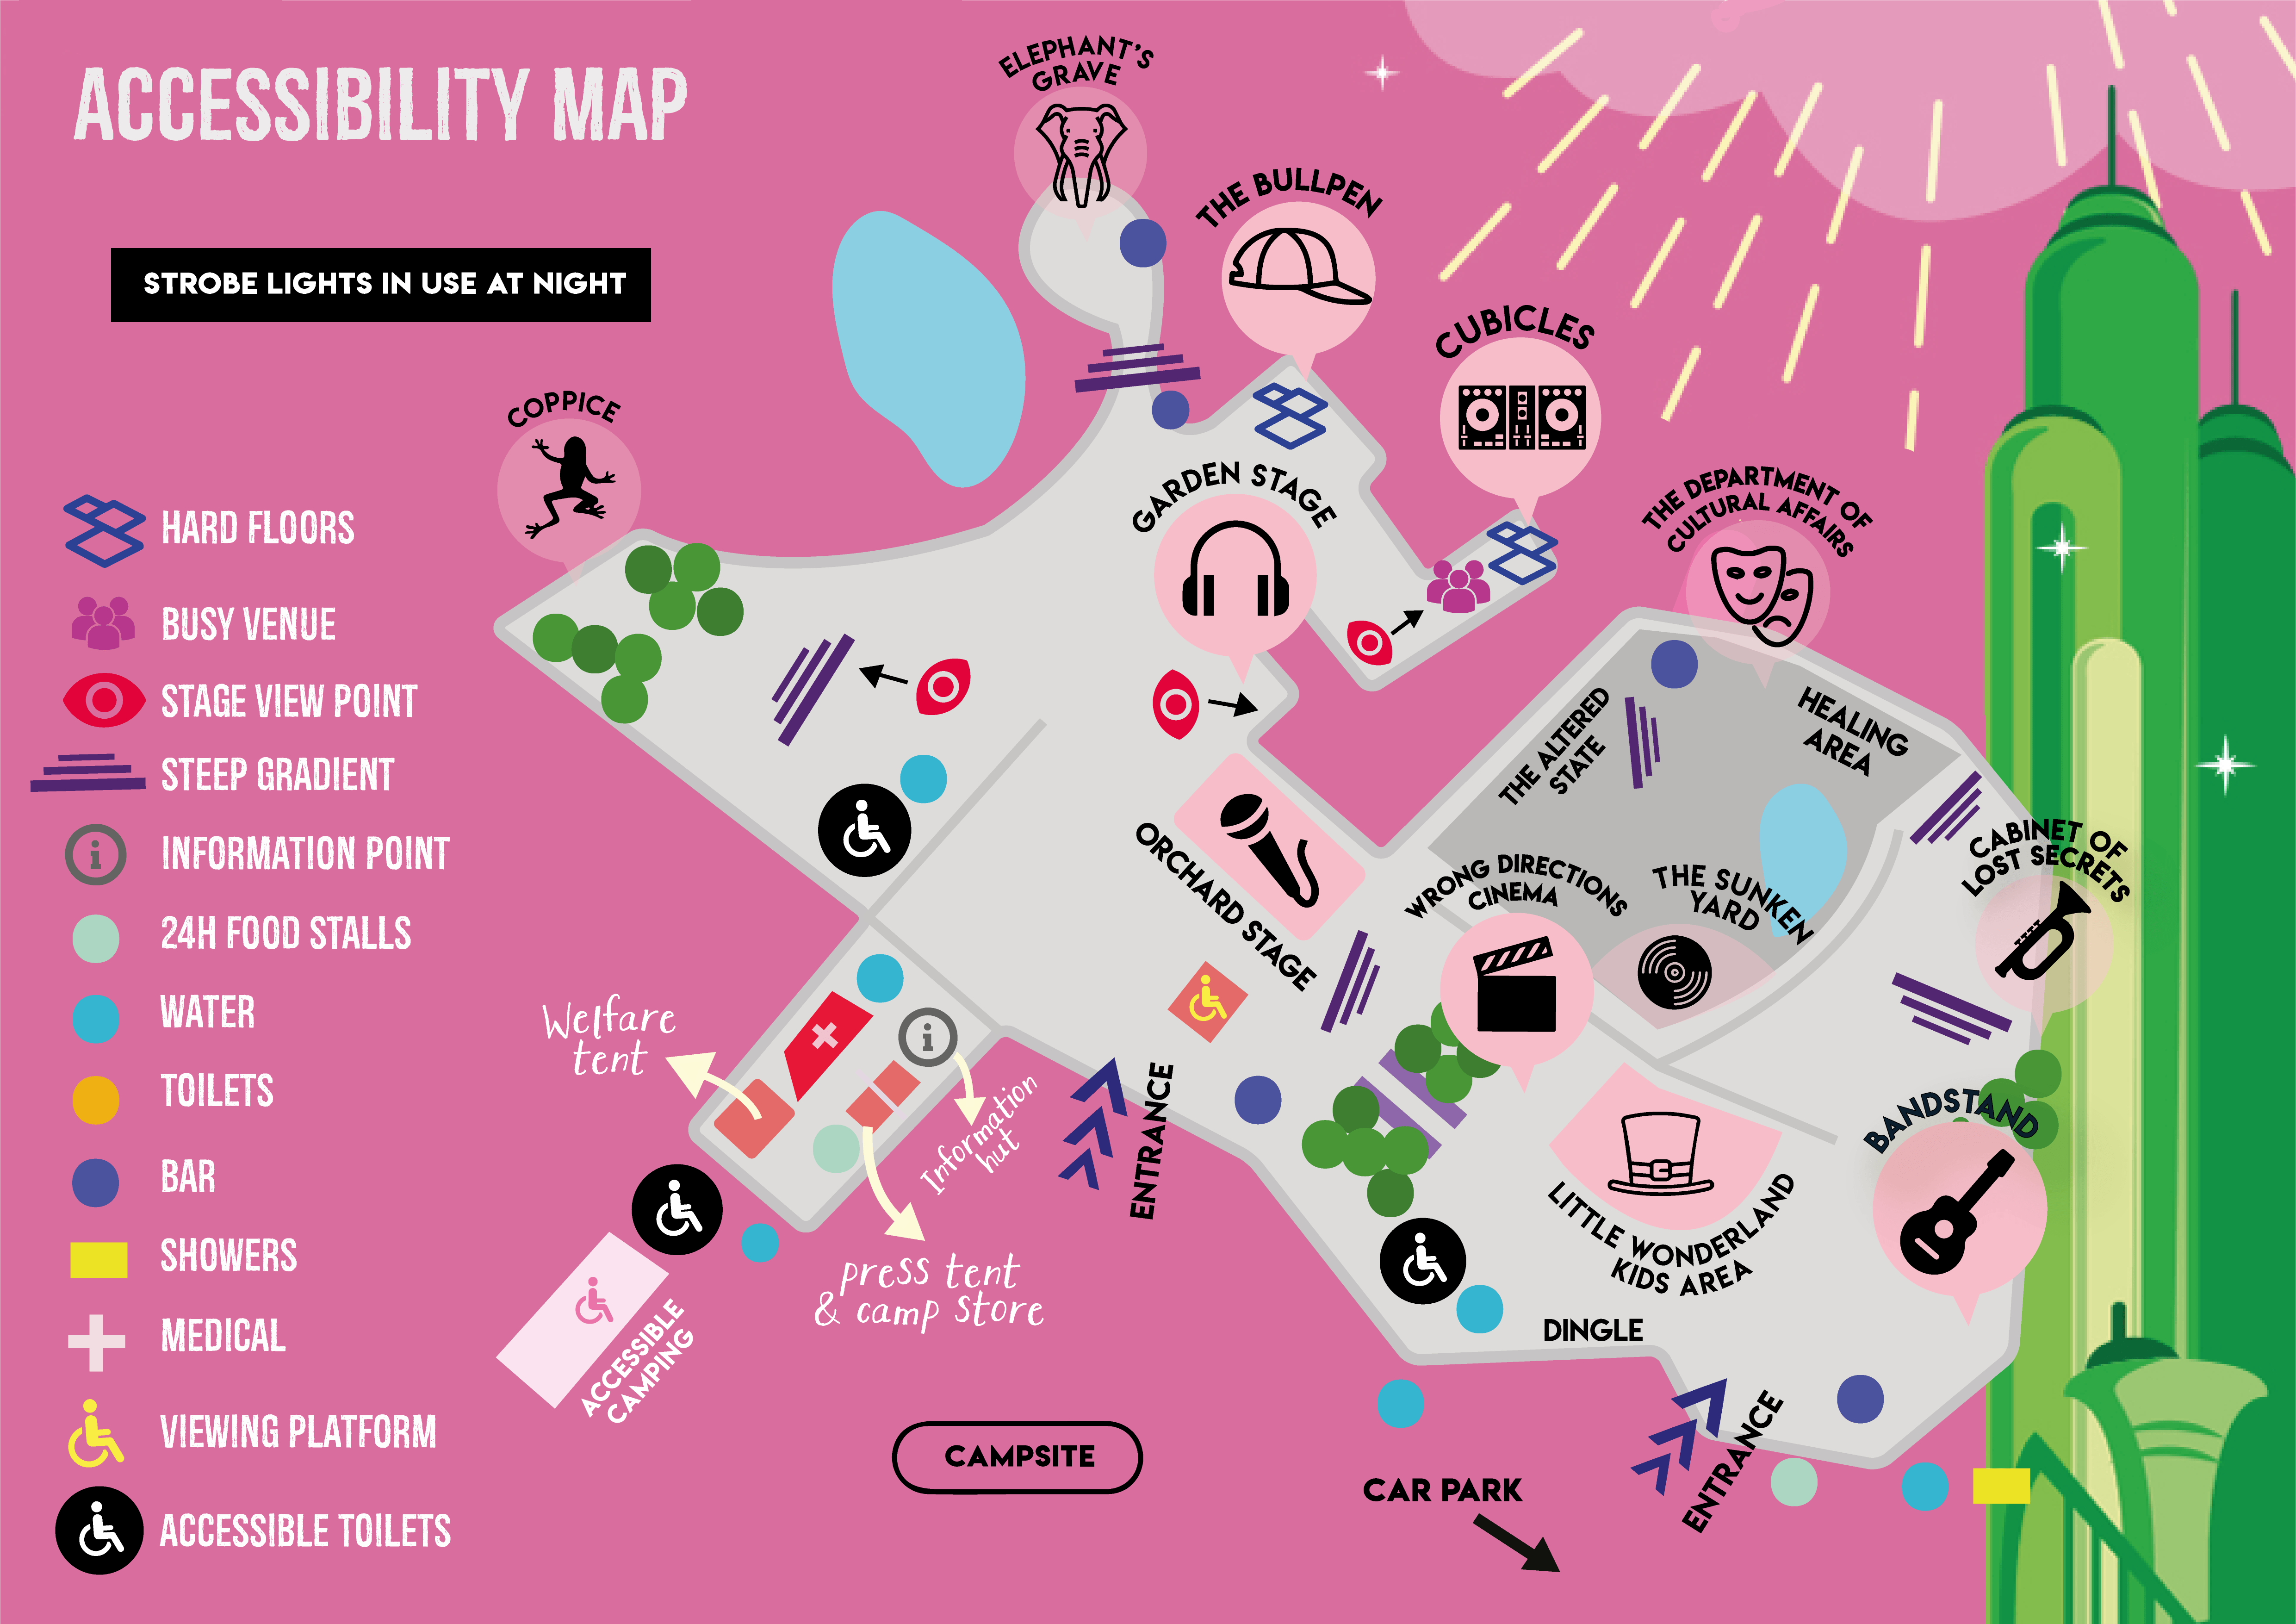 Accessibility map of Nozstock 2019